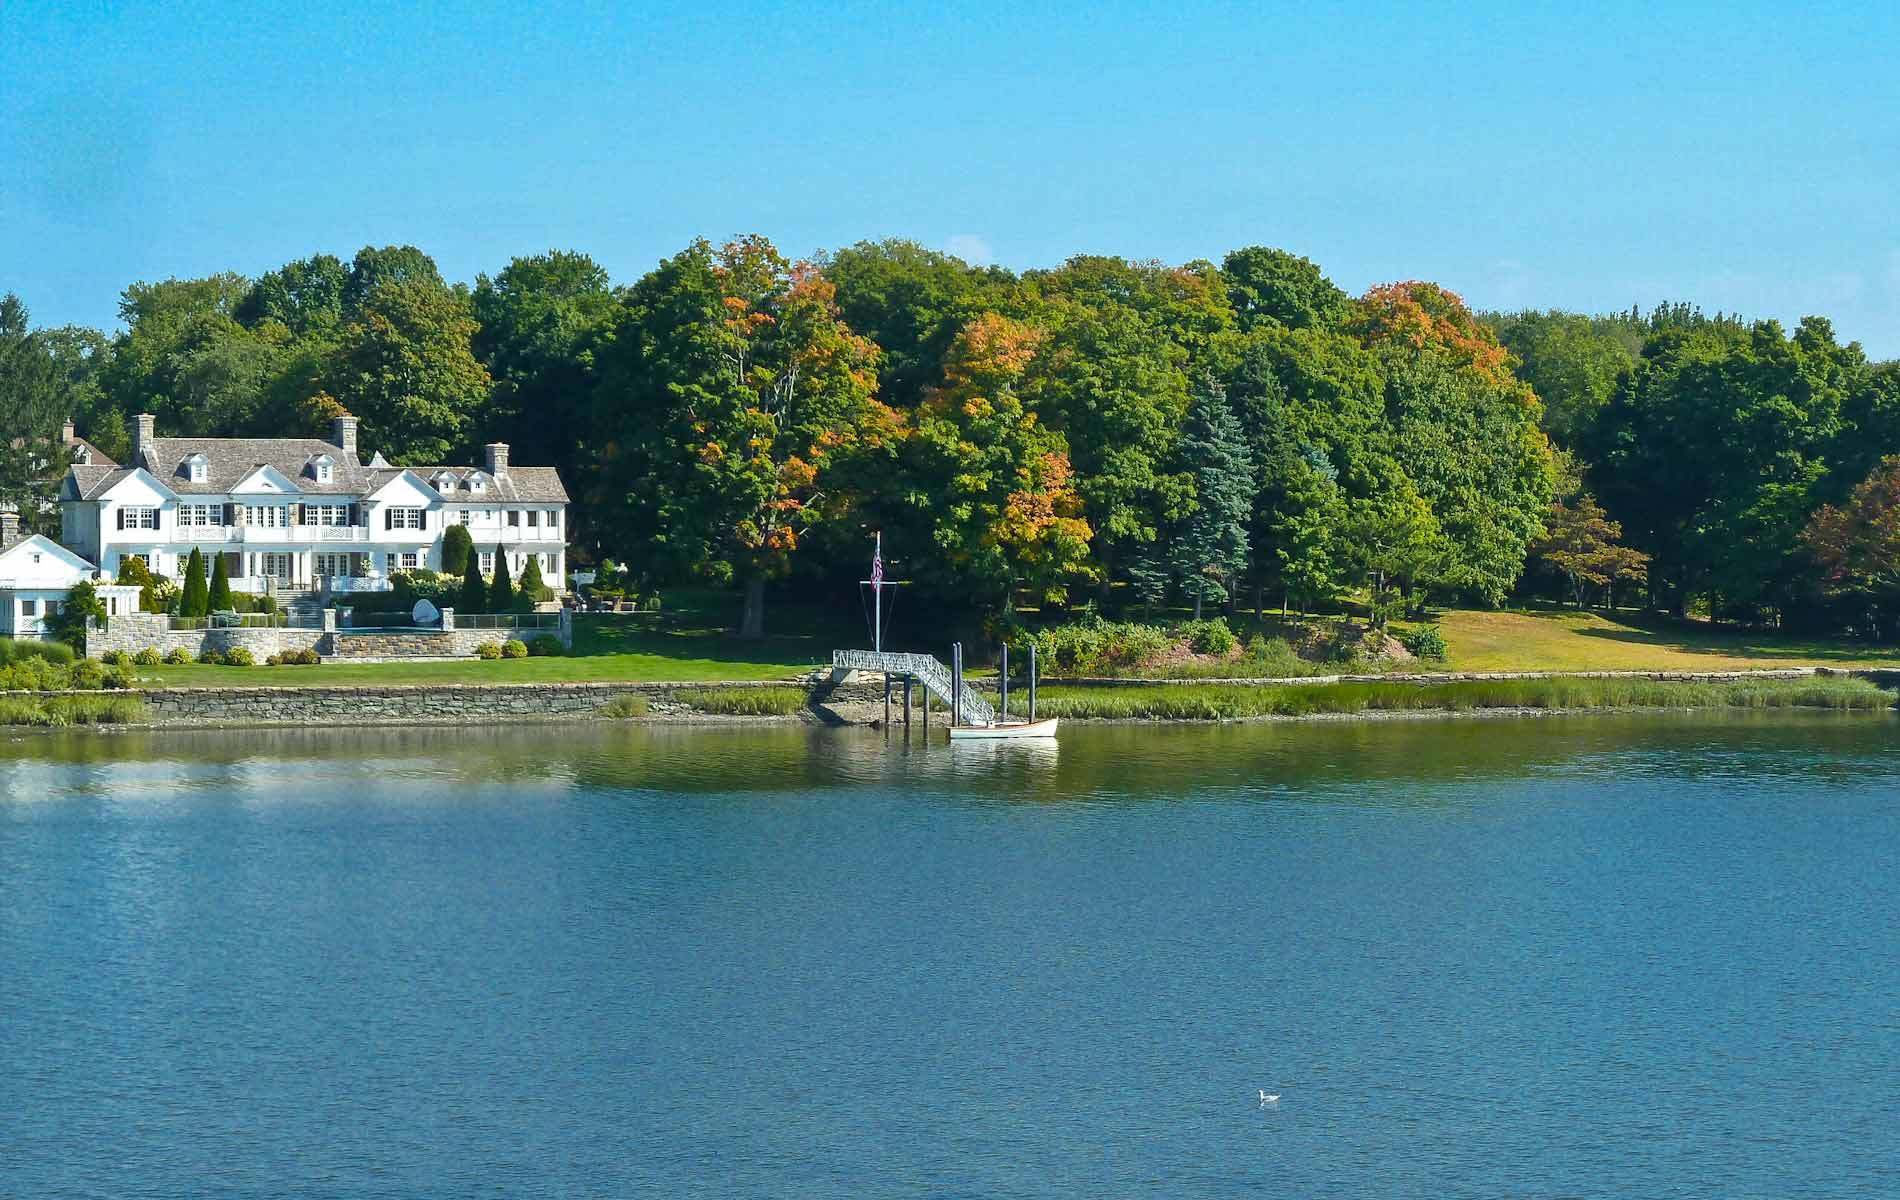 Waterfront Homes for Sale in Greenwich CT: Ocean Beach View